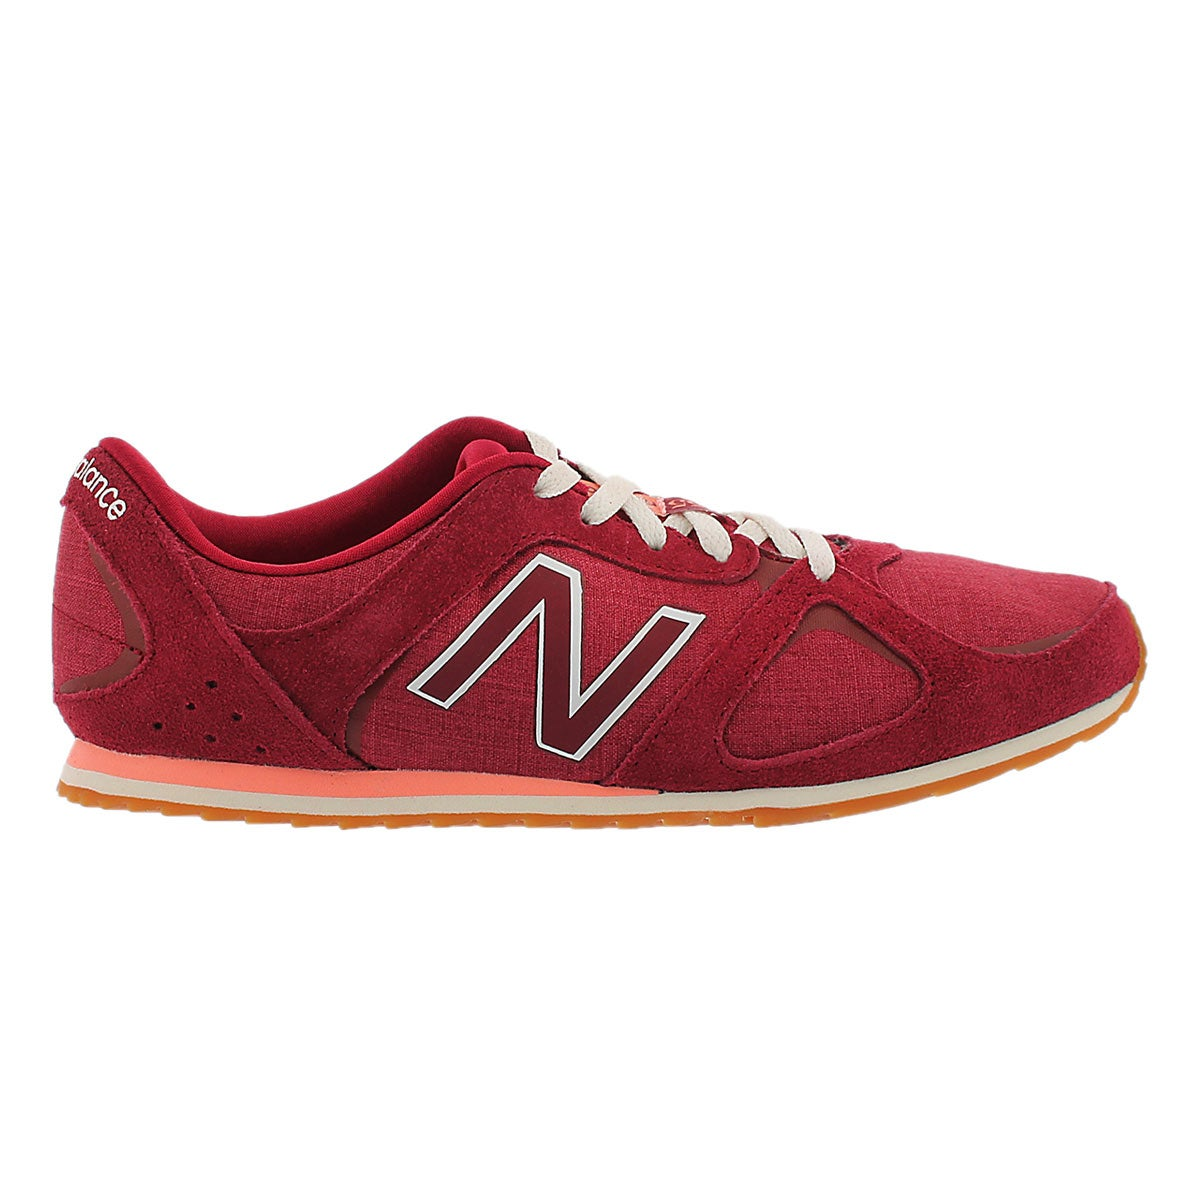 Lds 555 red lace up sneaker